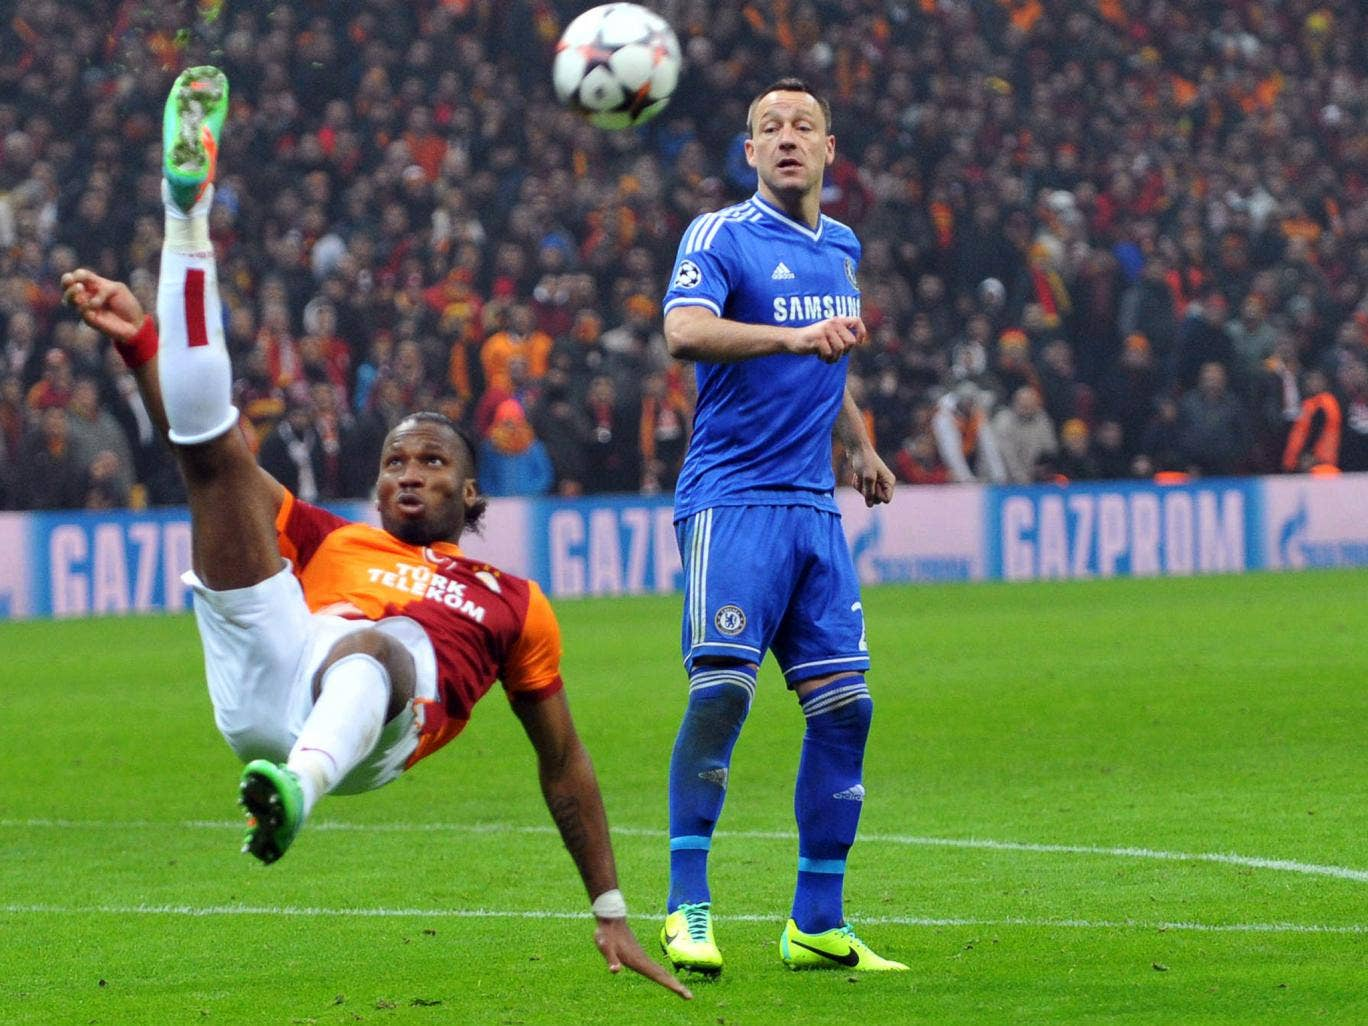 Didier Drogba in action for Galatasaray against former club Chelsea